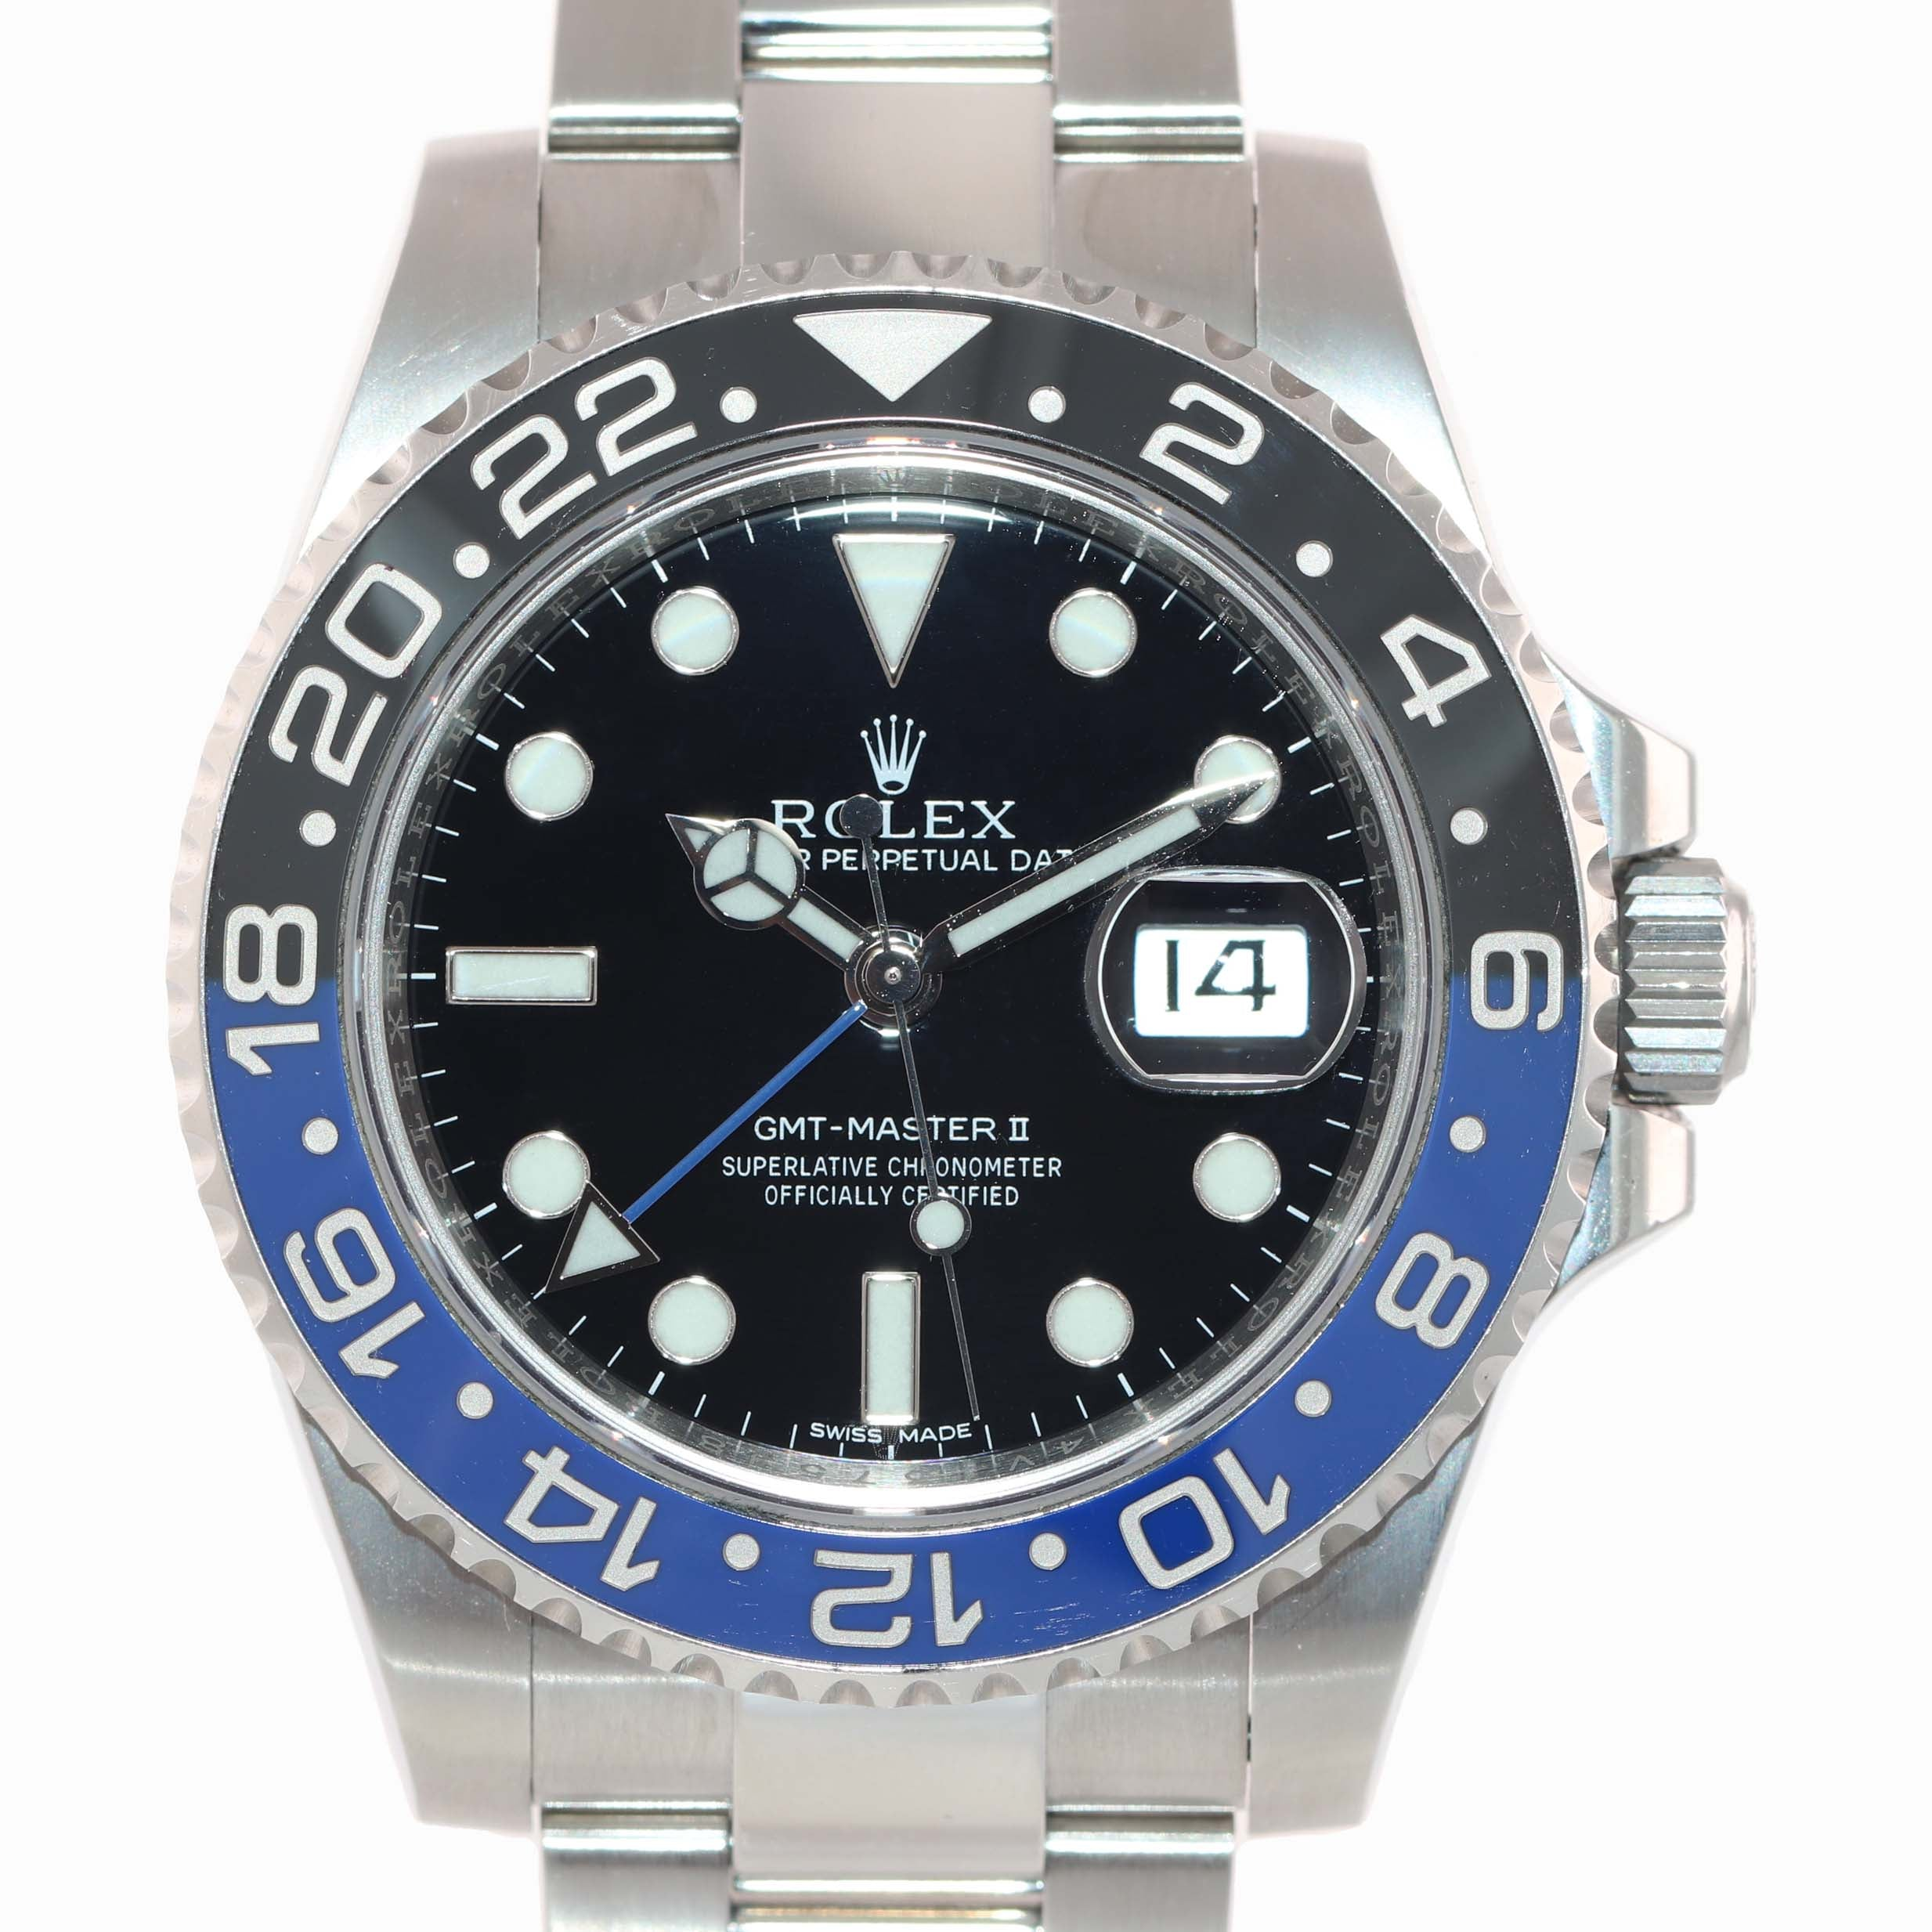 2019 PAPERS Rolex GMT Master II 116710 BLNR Steel Ceramic Batman Blue Watch